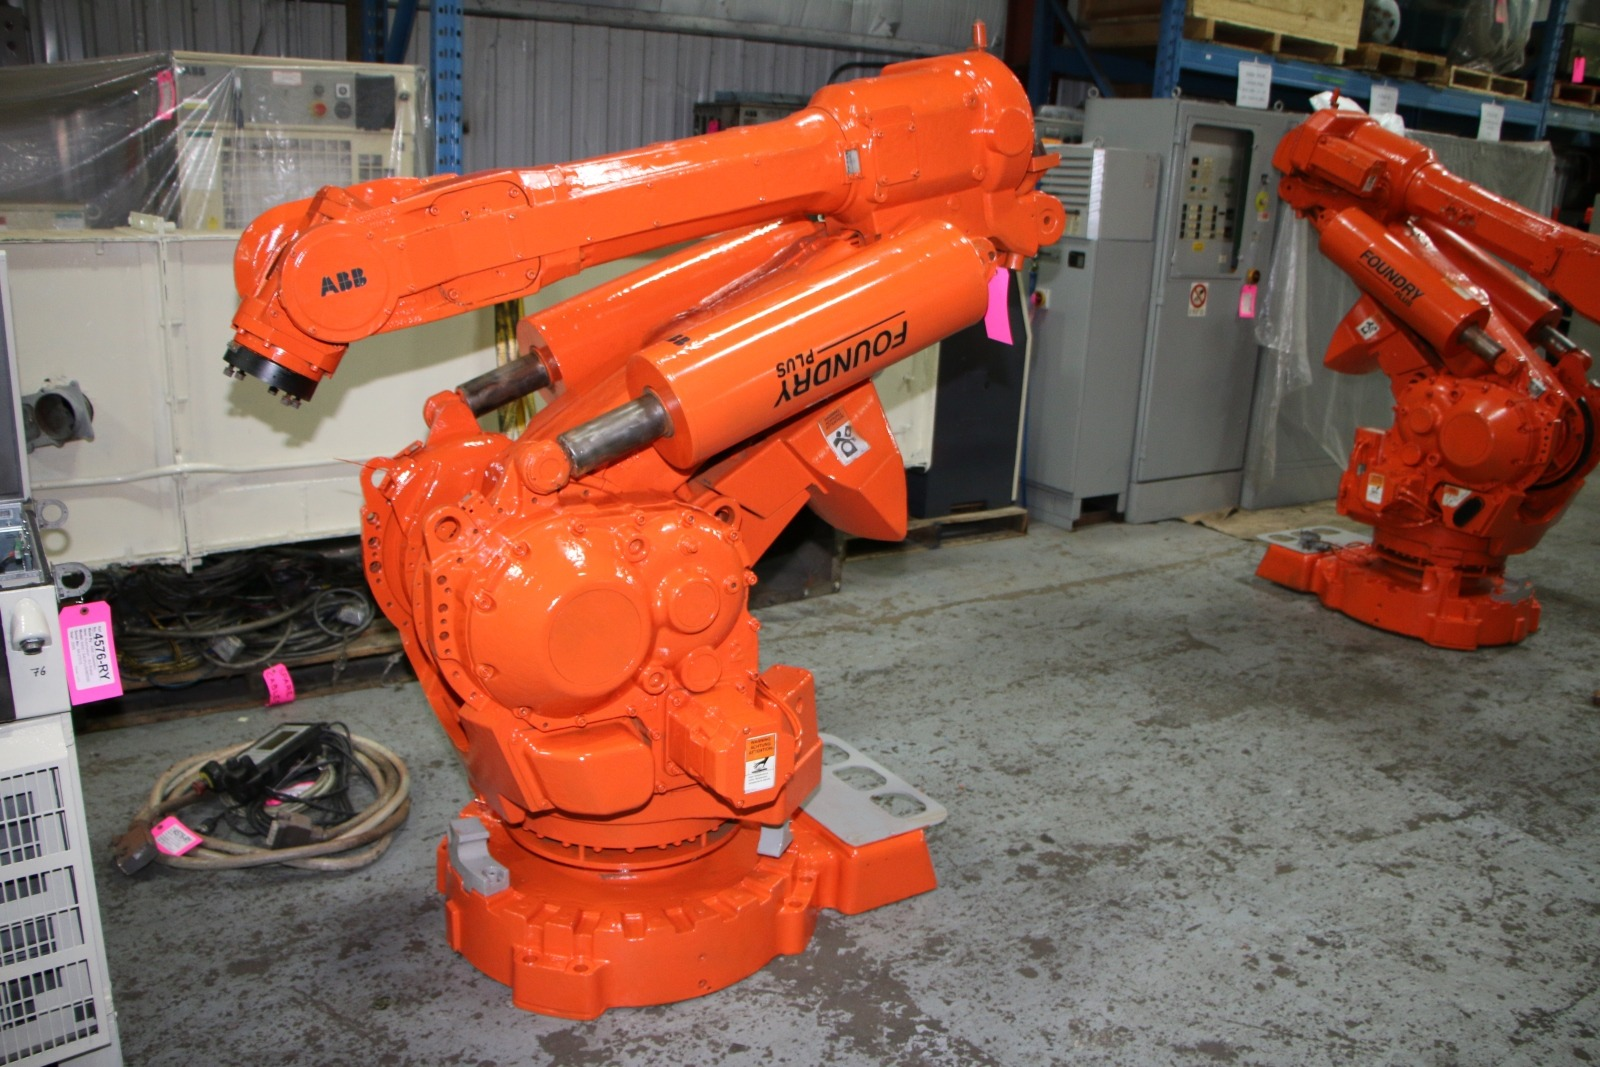 Used ABB 6400 Foundry Plus Robot #4576